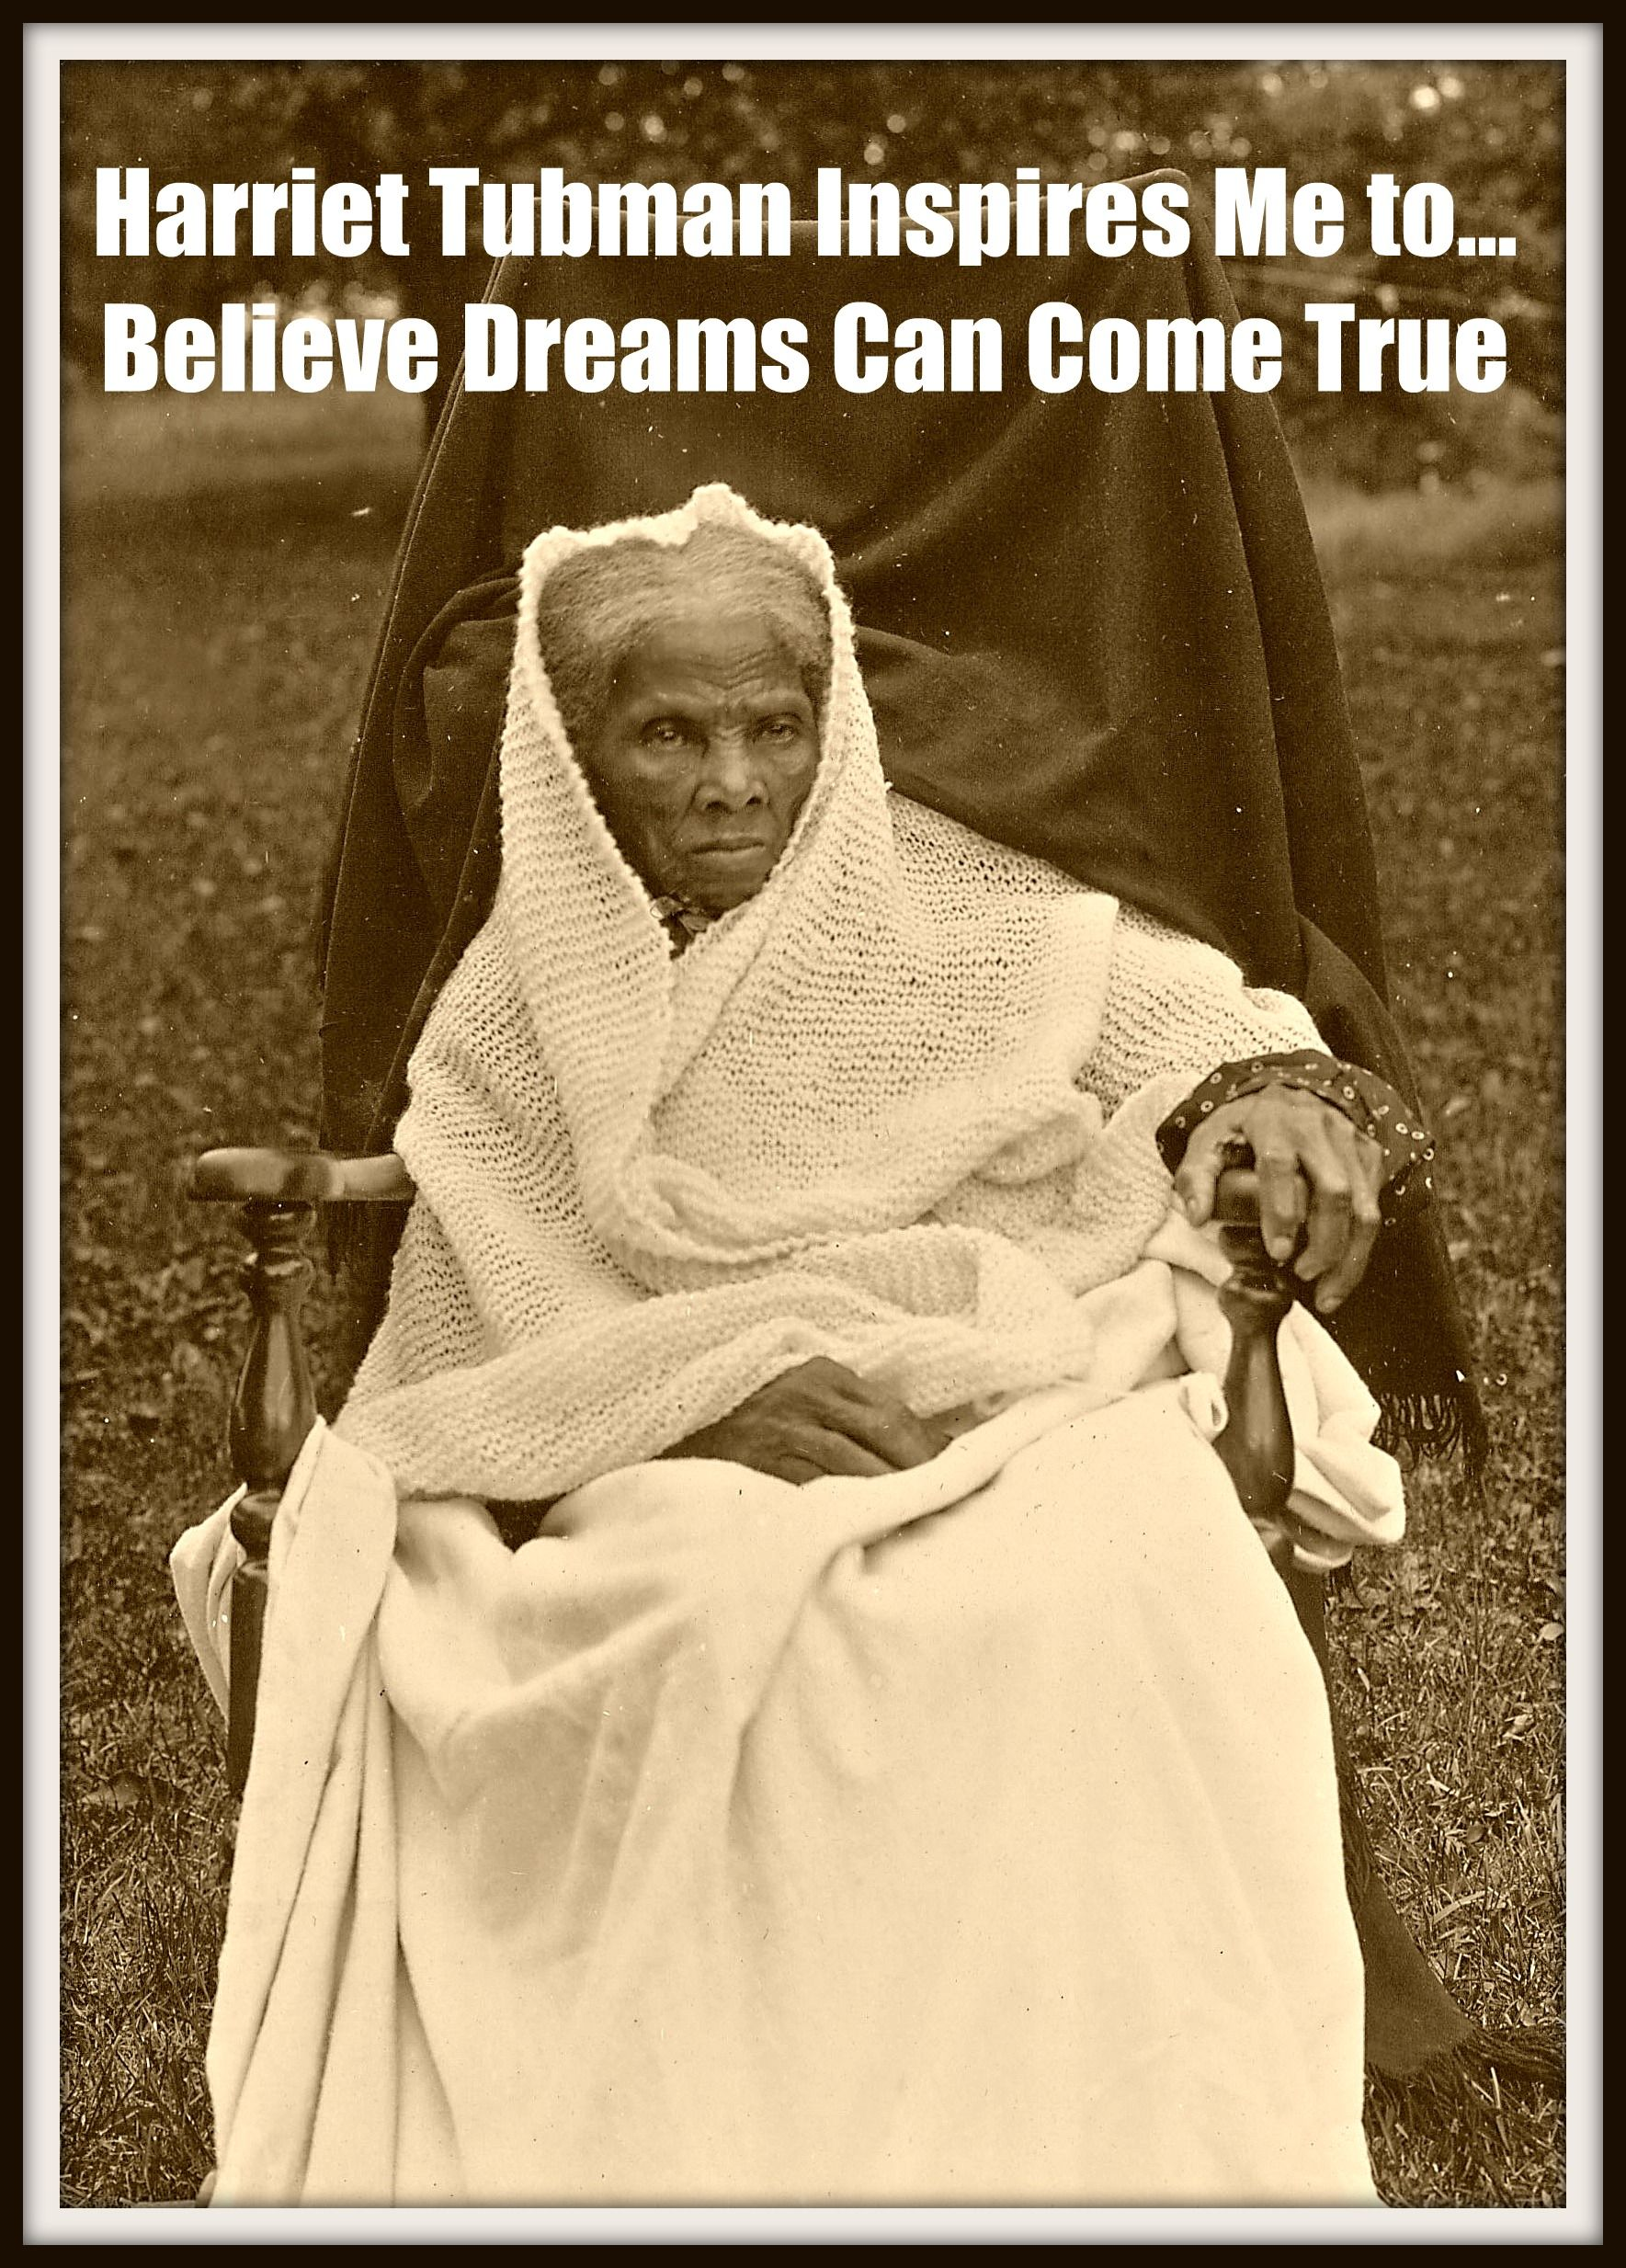 Inspirational Lessons From Harriet Tubman